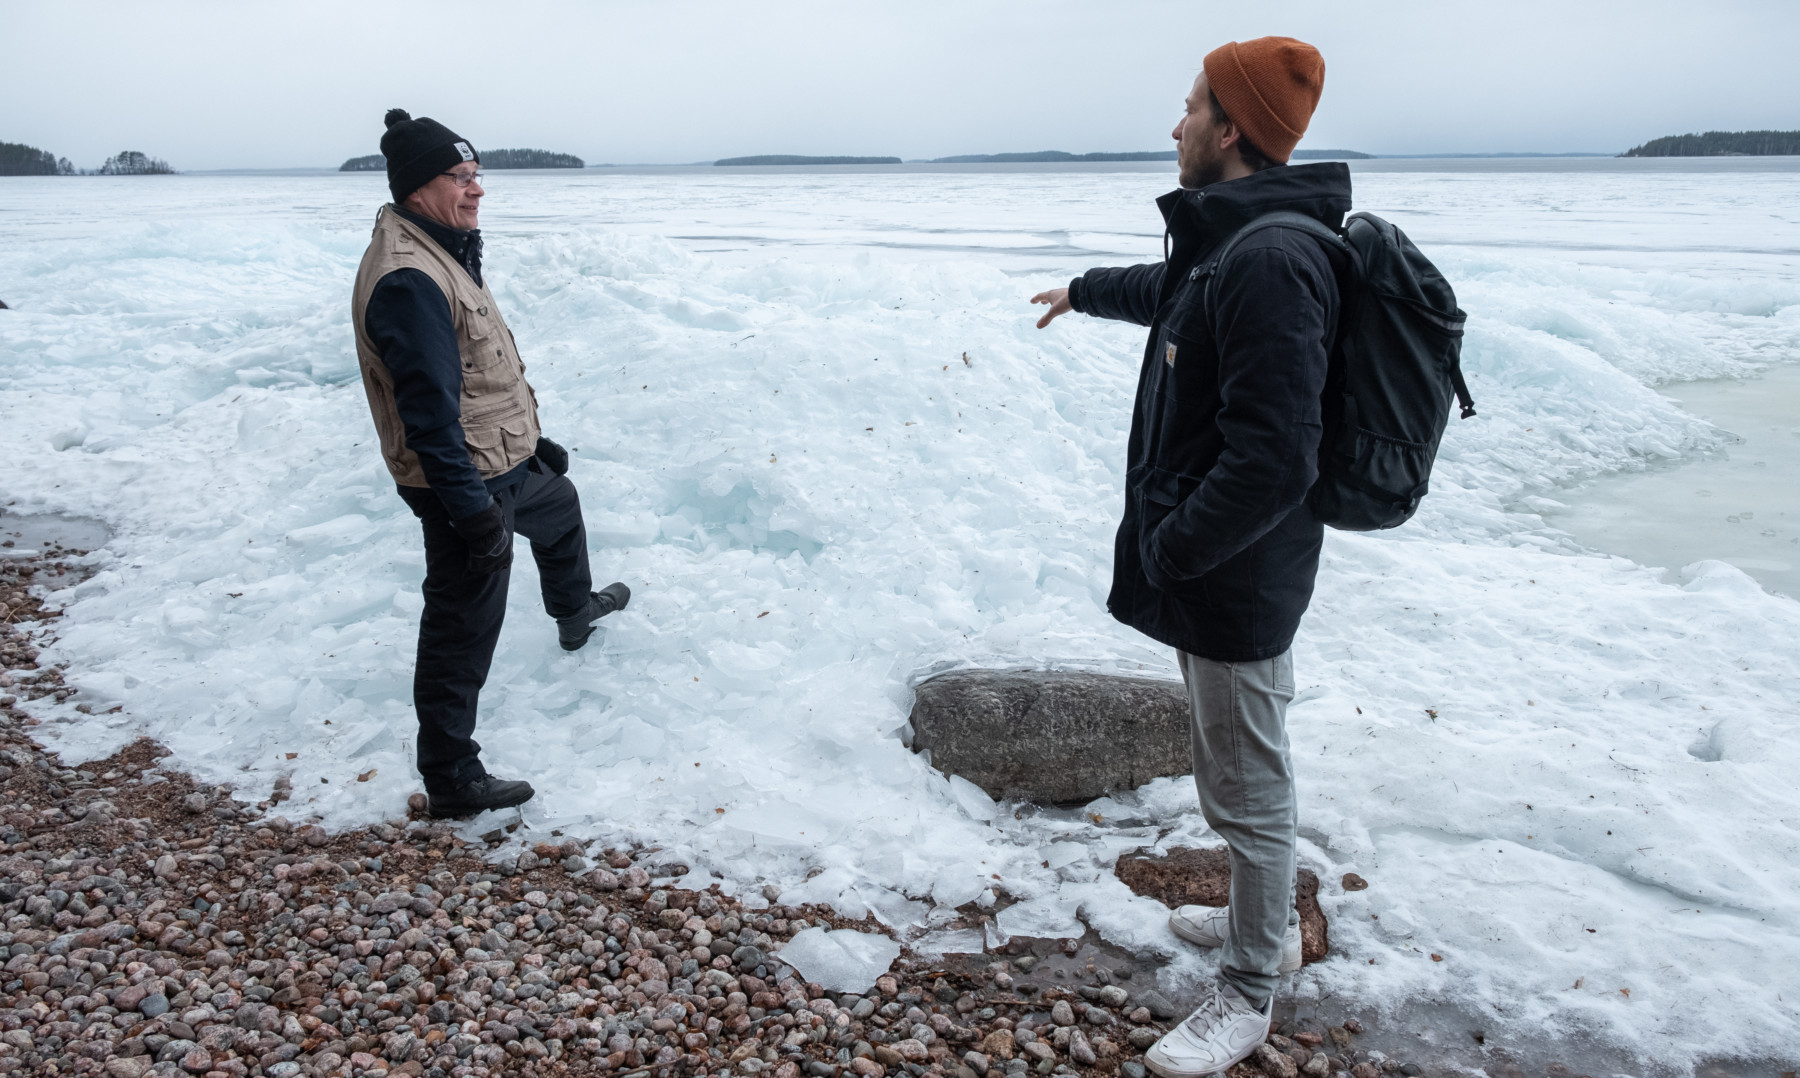 Joonas Fritze (right) of WWF Finland and Ismo Marttinen, a volunteer, survey the Saimaa lakeshore near Lappeenranta in southeastern Finland. The wind has broken the unusually thin lake ice and pushed it into jagged piles on the shore of a bay.